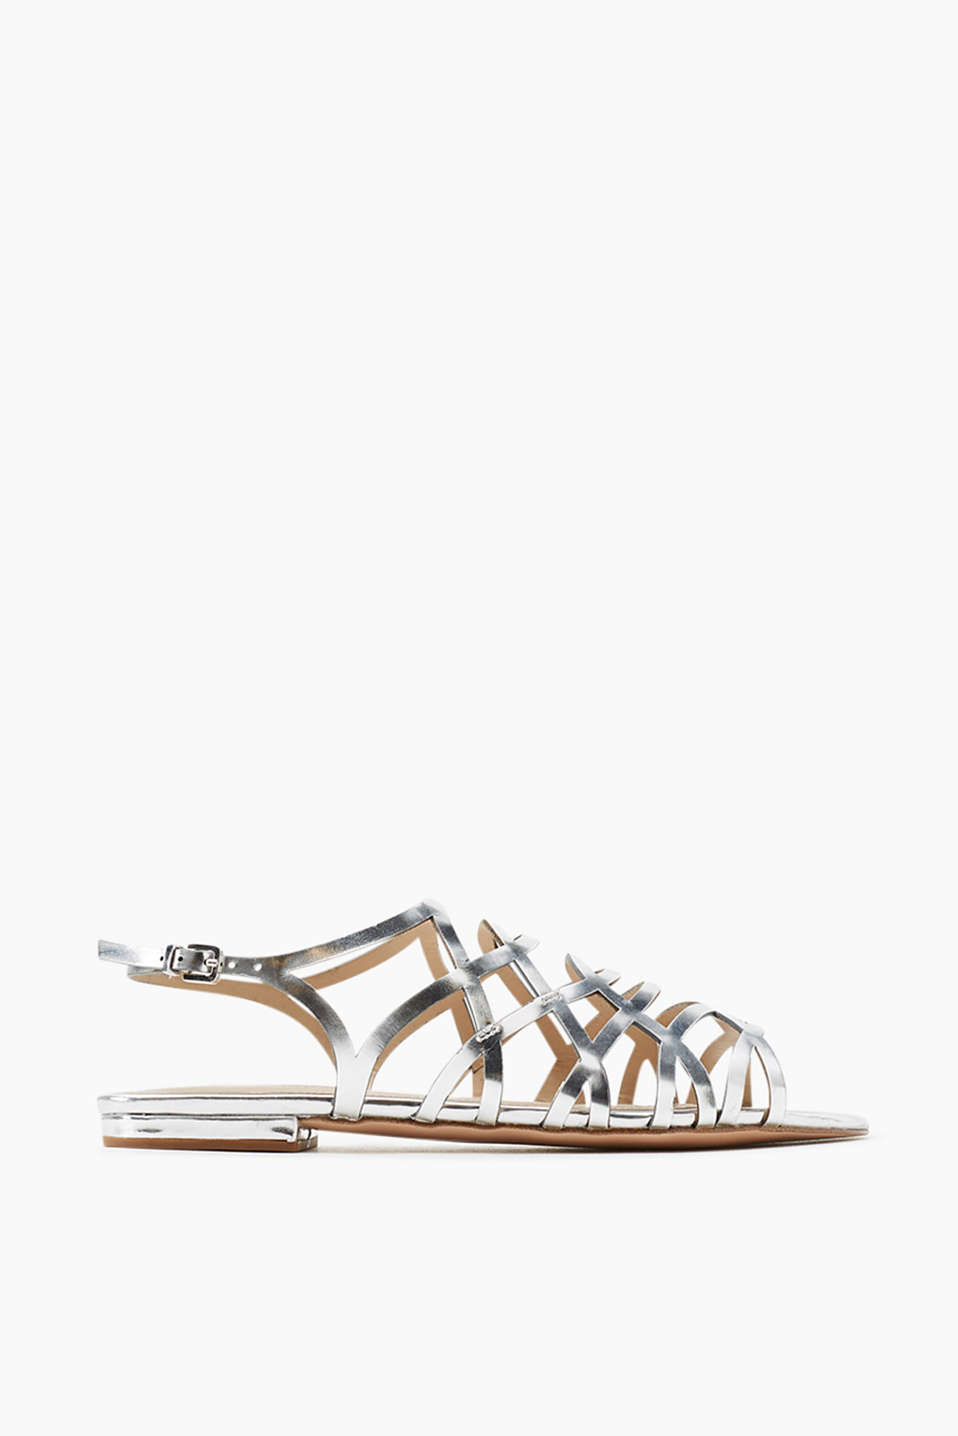 Sandals with femininely styled straps in a trendy, metallic look